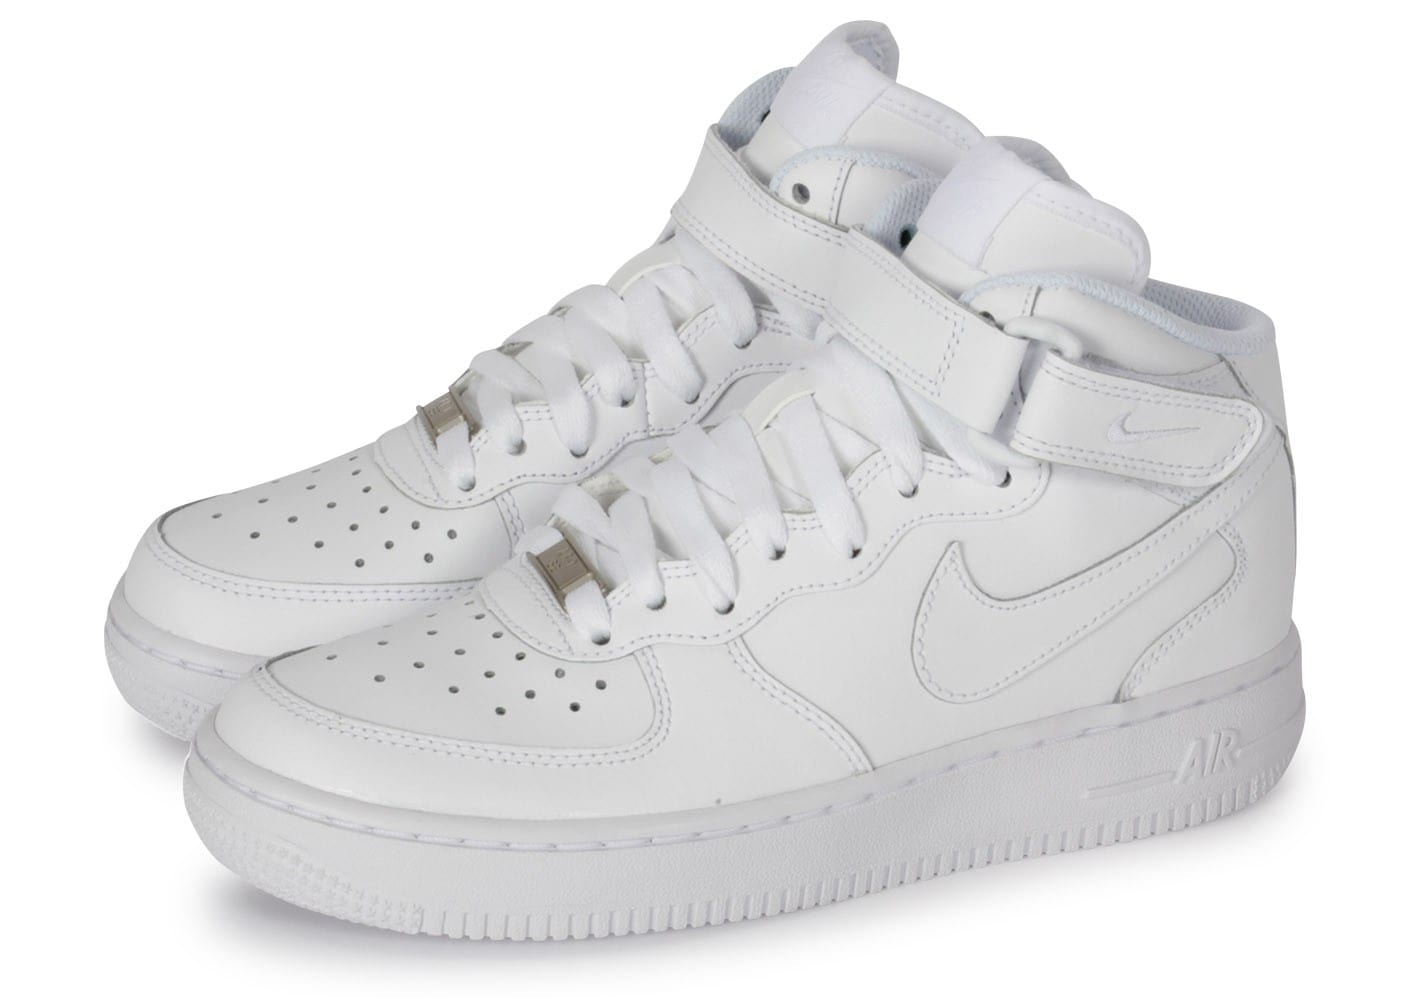 nike air force 1 j mid triple blanc chaussures black friday chausport. Black Bedroom Furniture Sets. Home Design Ideas